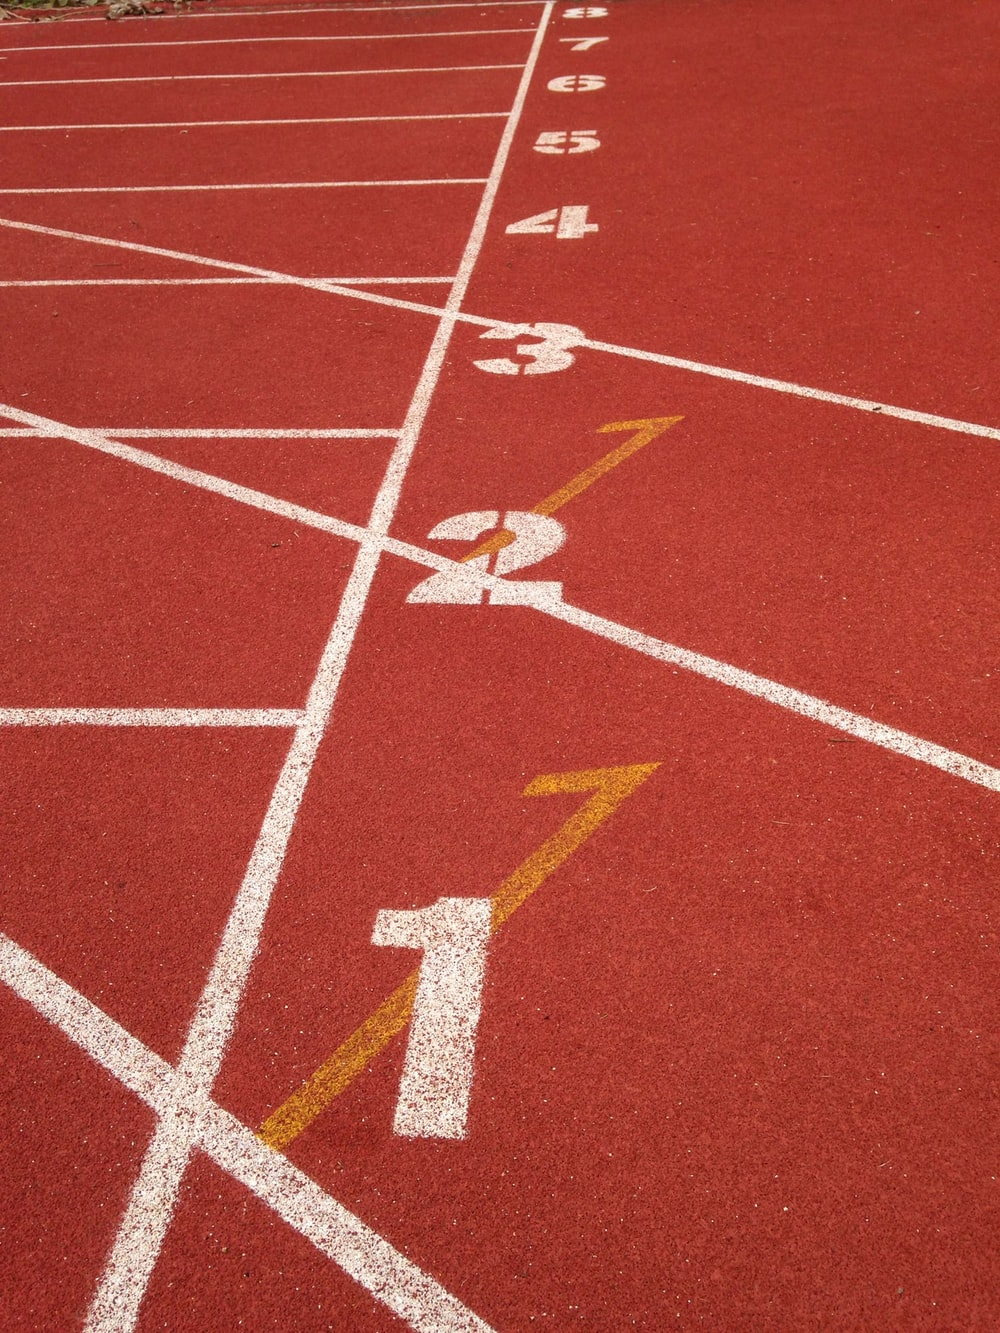 brown track field